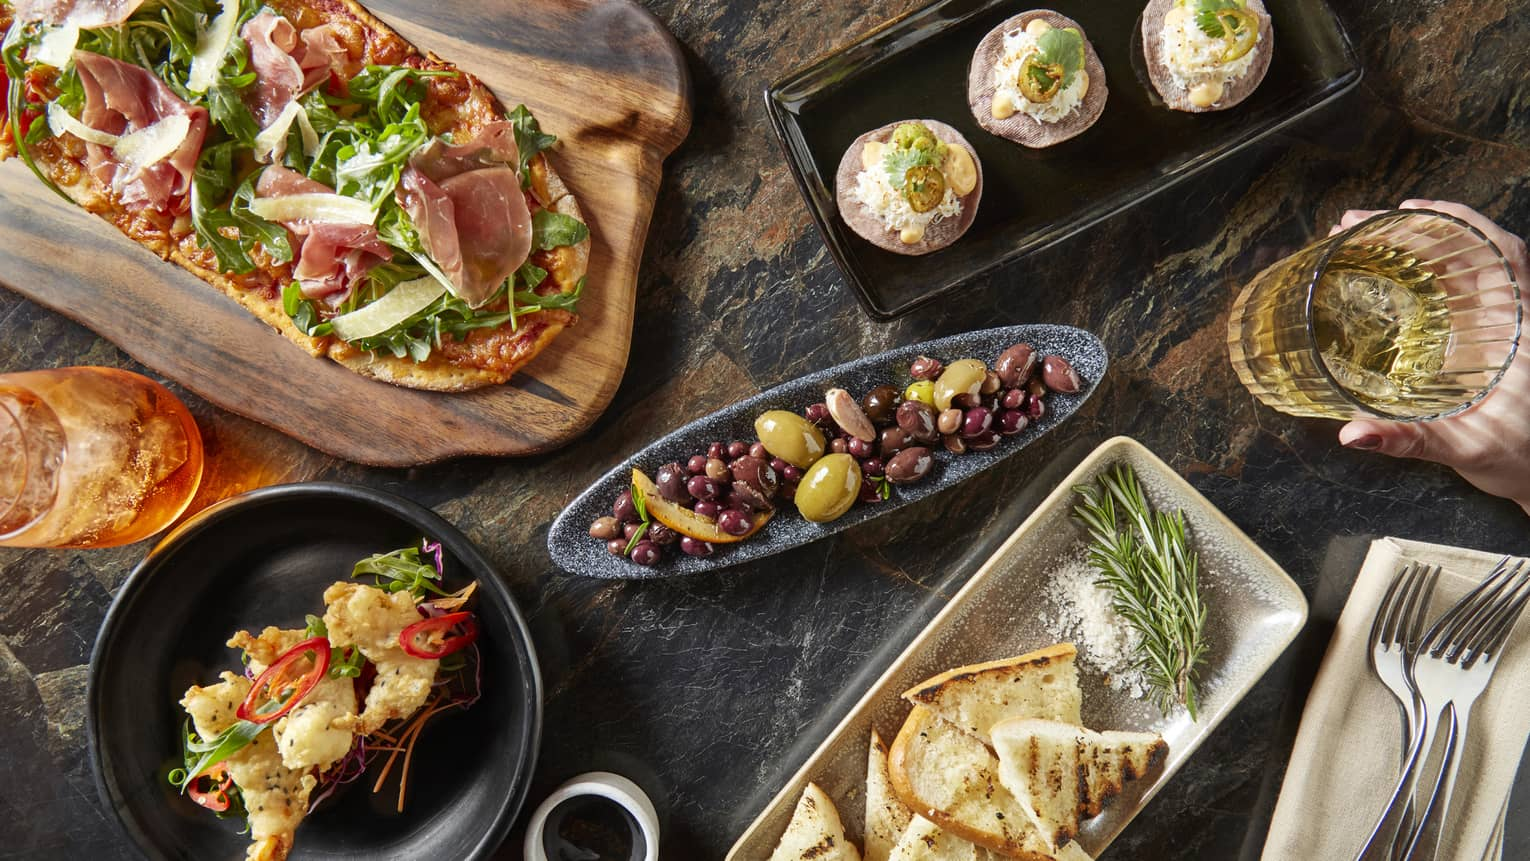 Food details from the Grain Bar, including pita bread, olives, flat breads and more